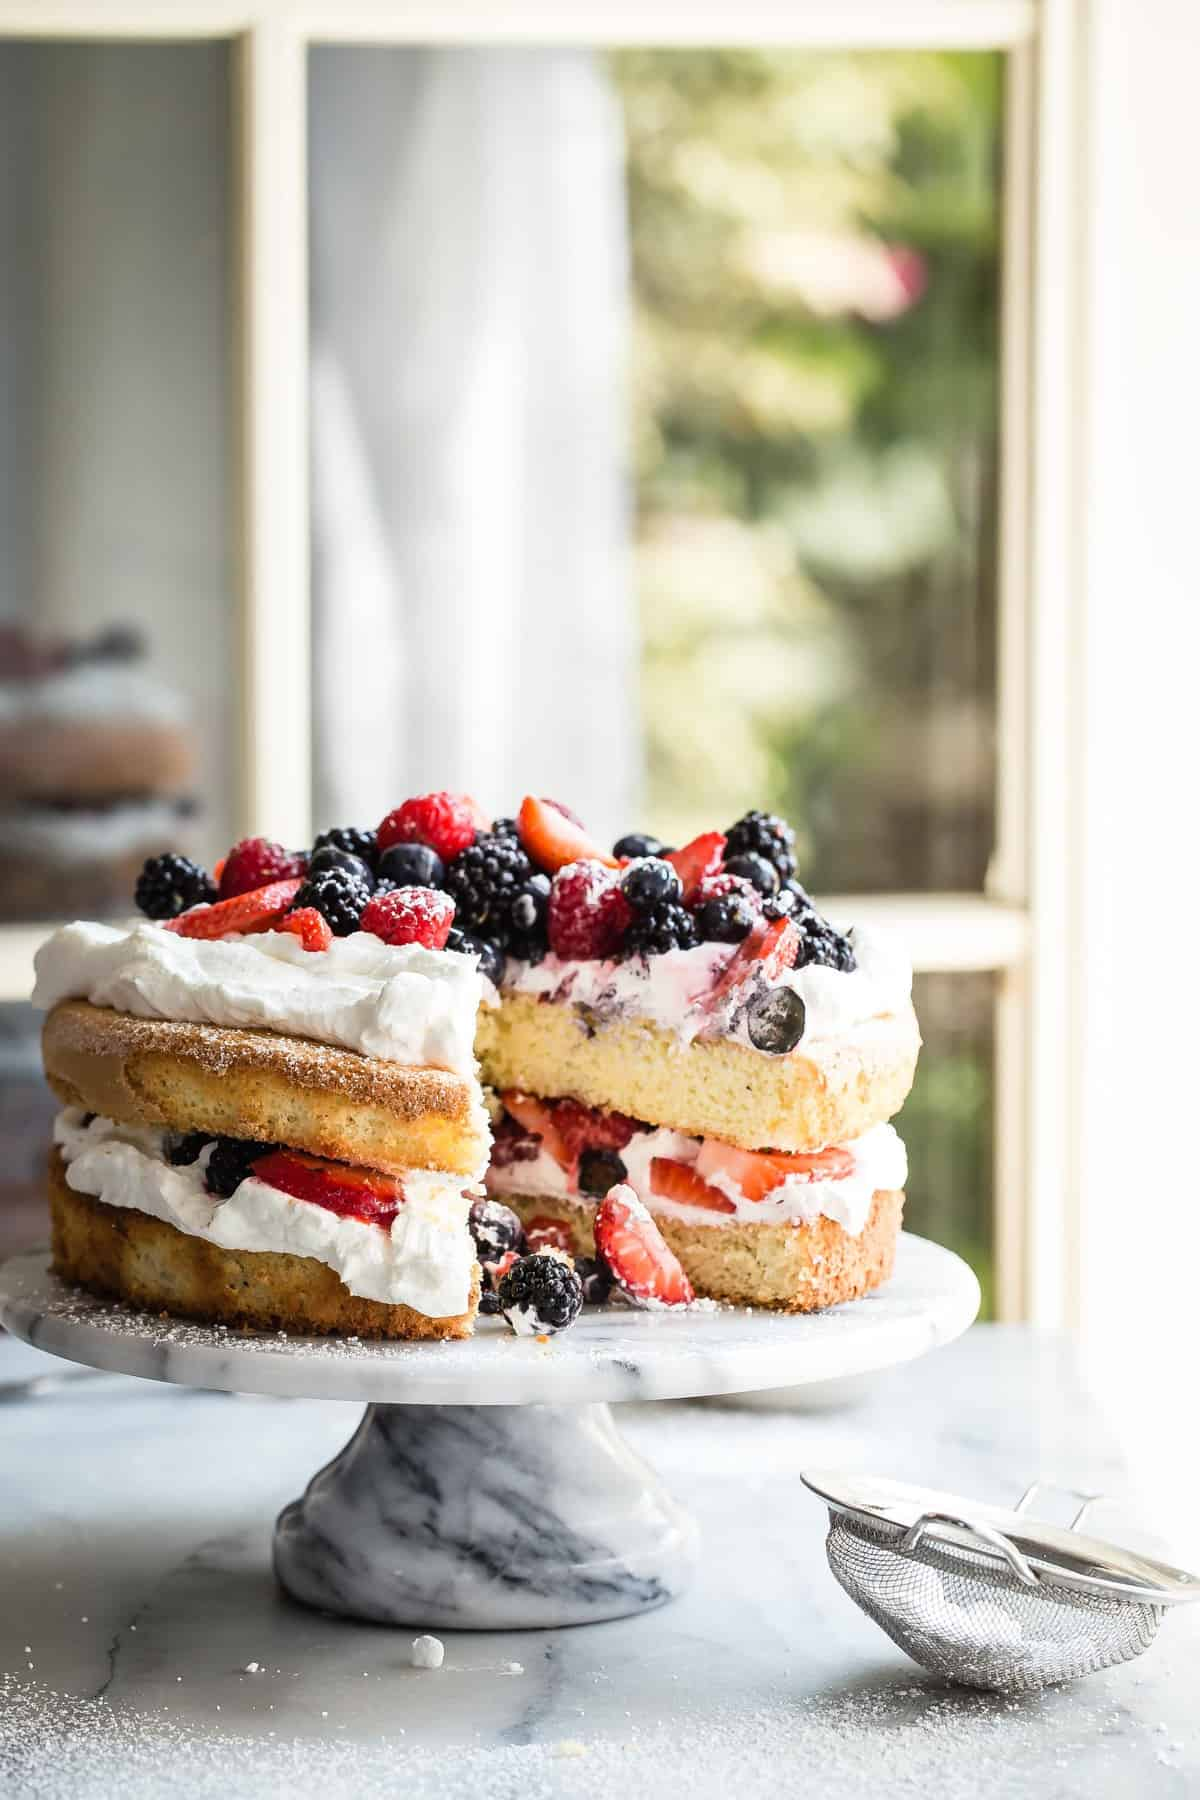 This light and fluffy mixed Berry and Cream Sponge Cake is layered with jam, heavy whipping cream and fresh berries. If you need a simple no fuss cake, then this is the recipe.